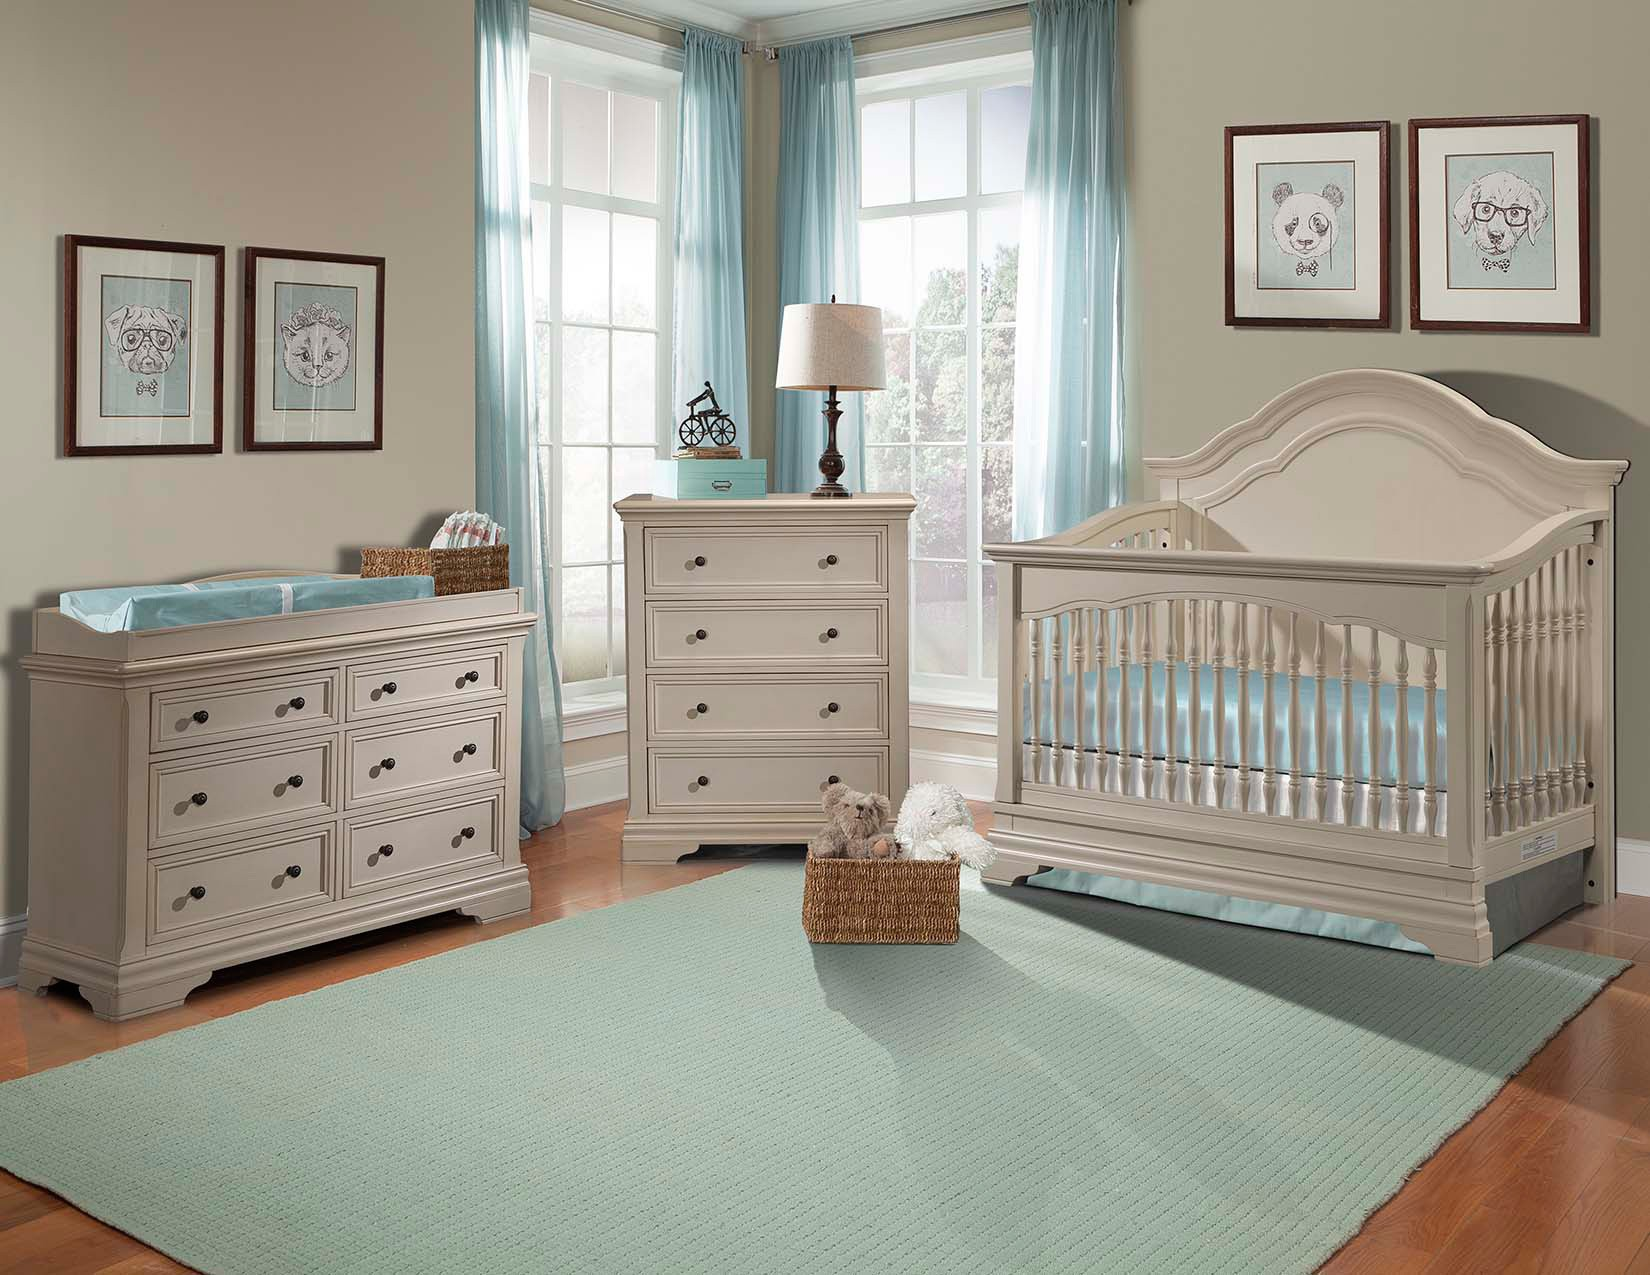 nursery furniture sets stella baby and child athena 3 piece nursery set in belgium cream also UMXCIVK